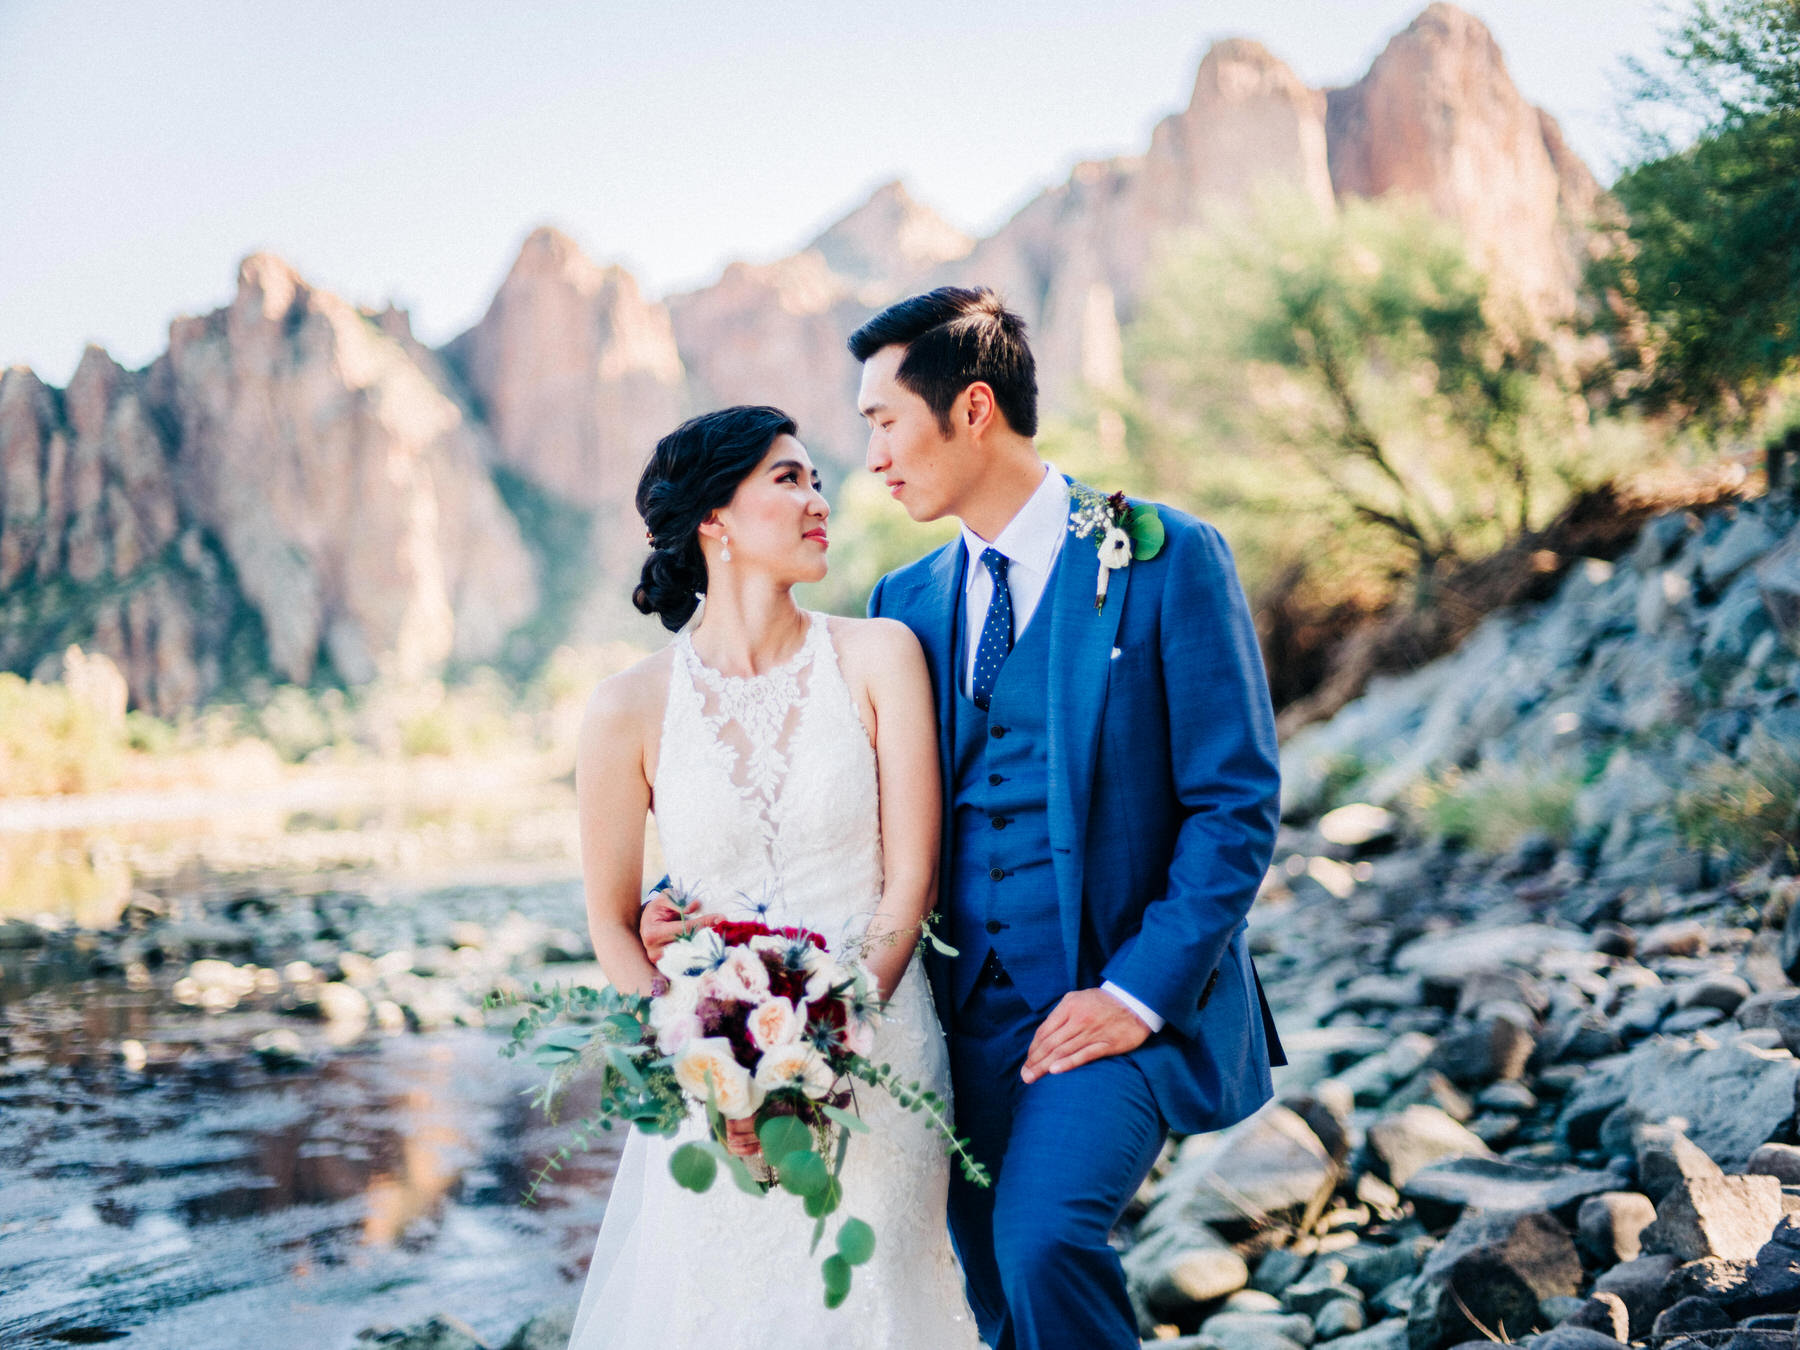 Bride and Groom married in the mountains outside Scottsdale, Arizona